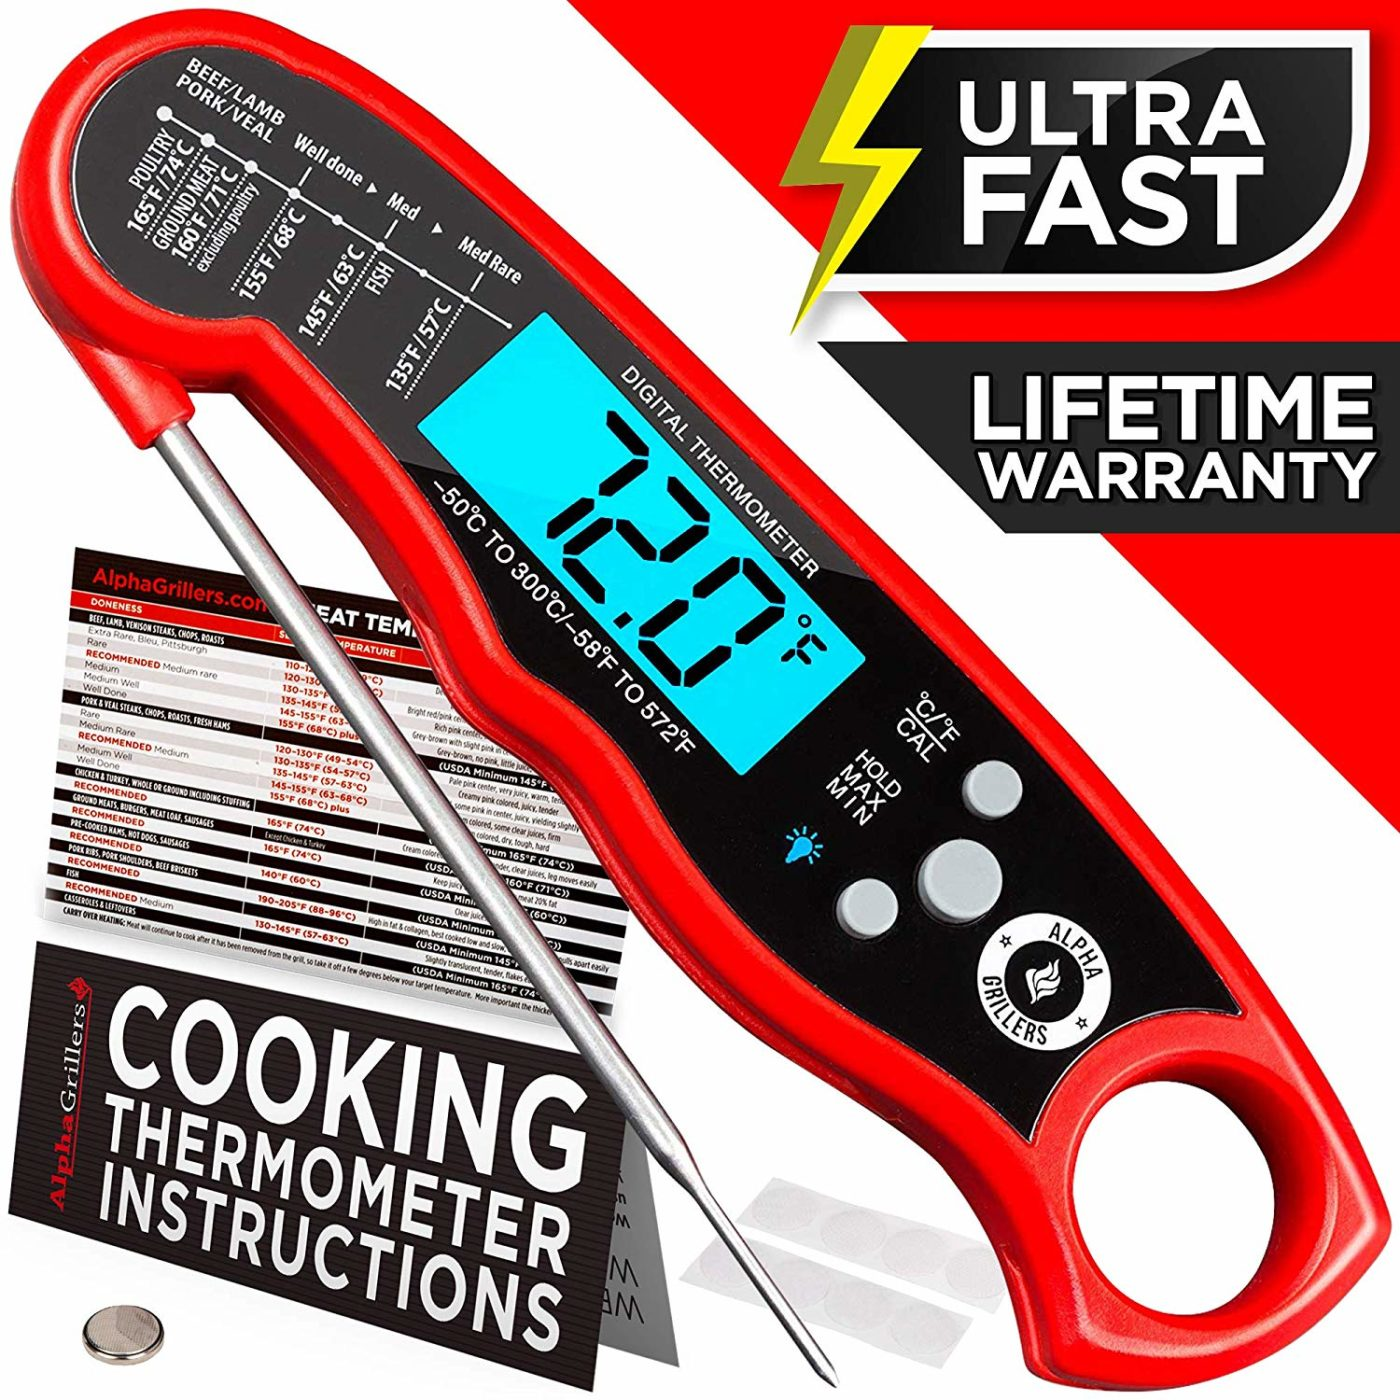 Alpha Grillers Instant Read Digital Meat Thermometer